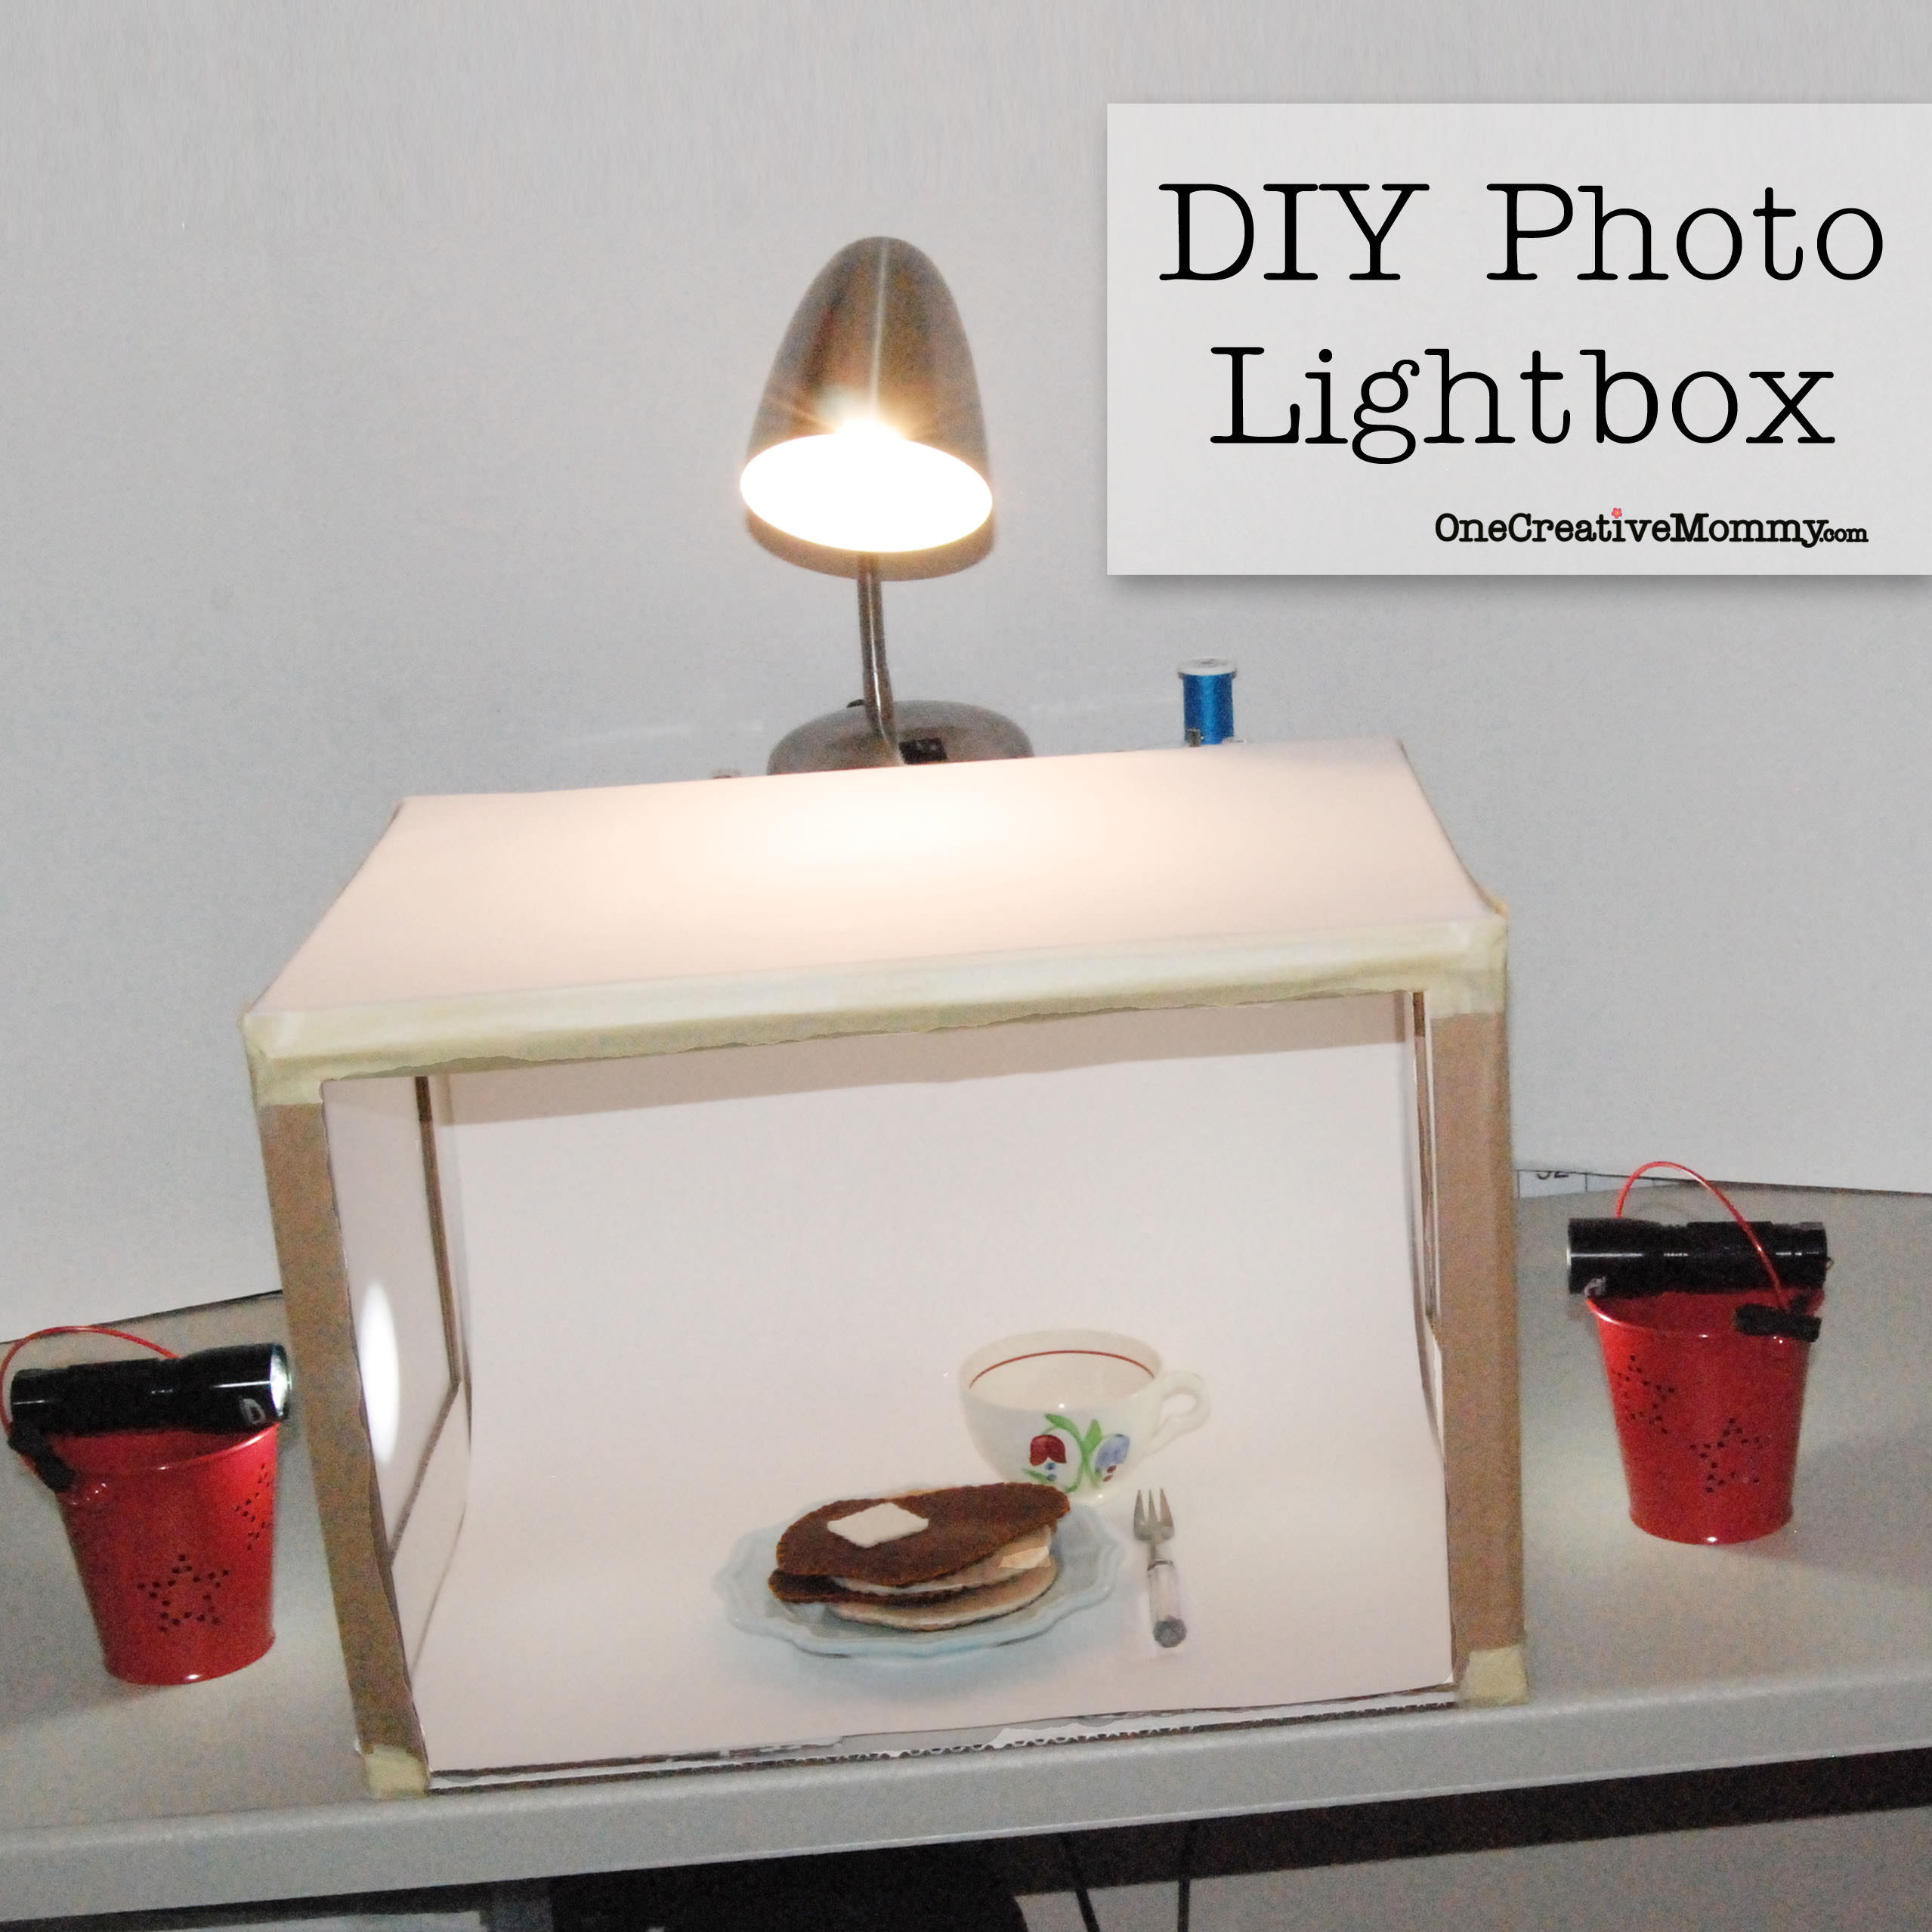 Best ideas about Light Box DIY . Save or Pin Grow Your Blog Series DIY Lightbox onecreativemommy Now.